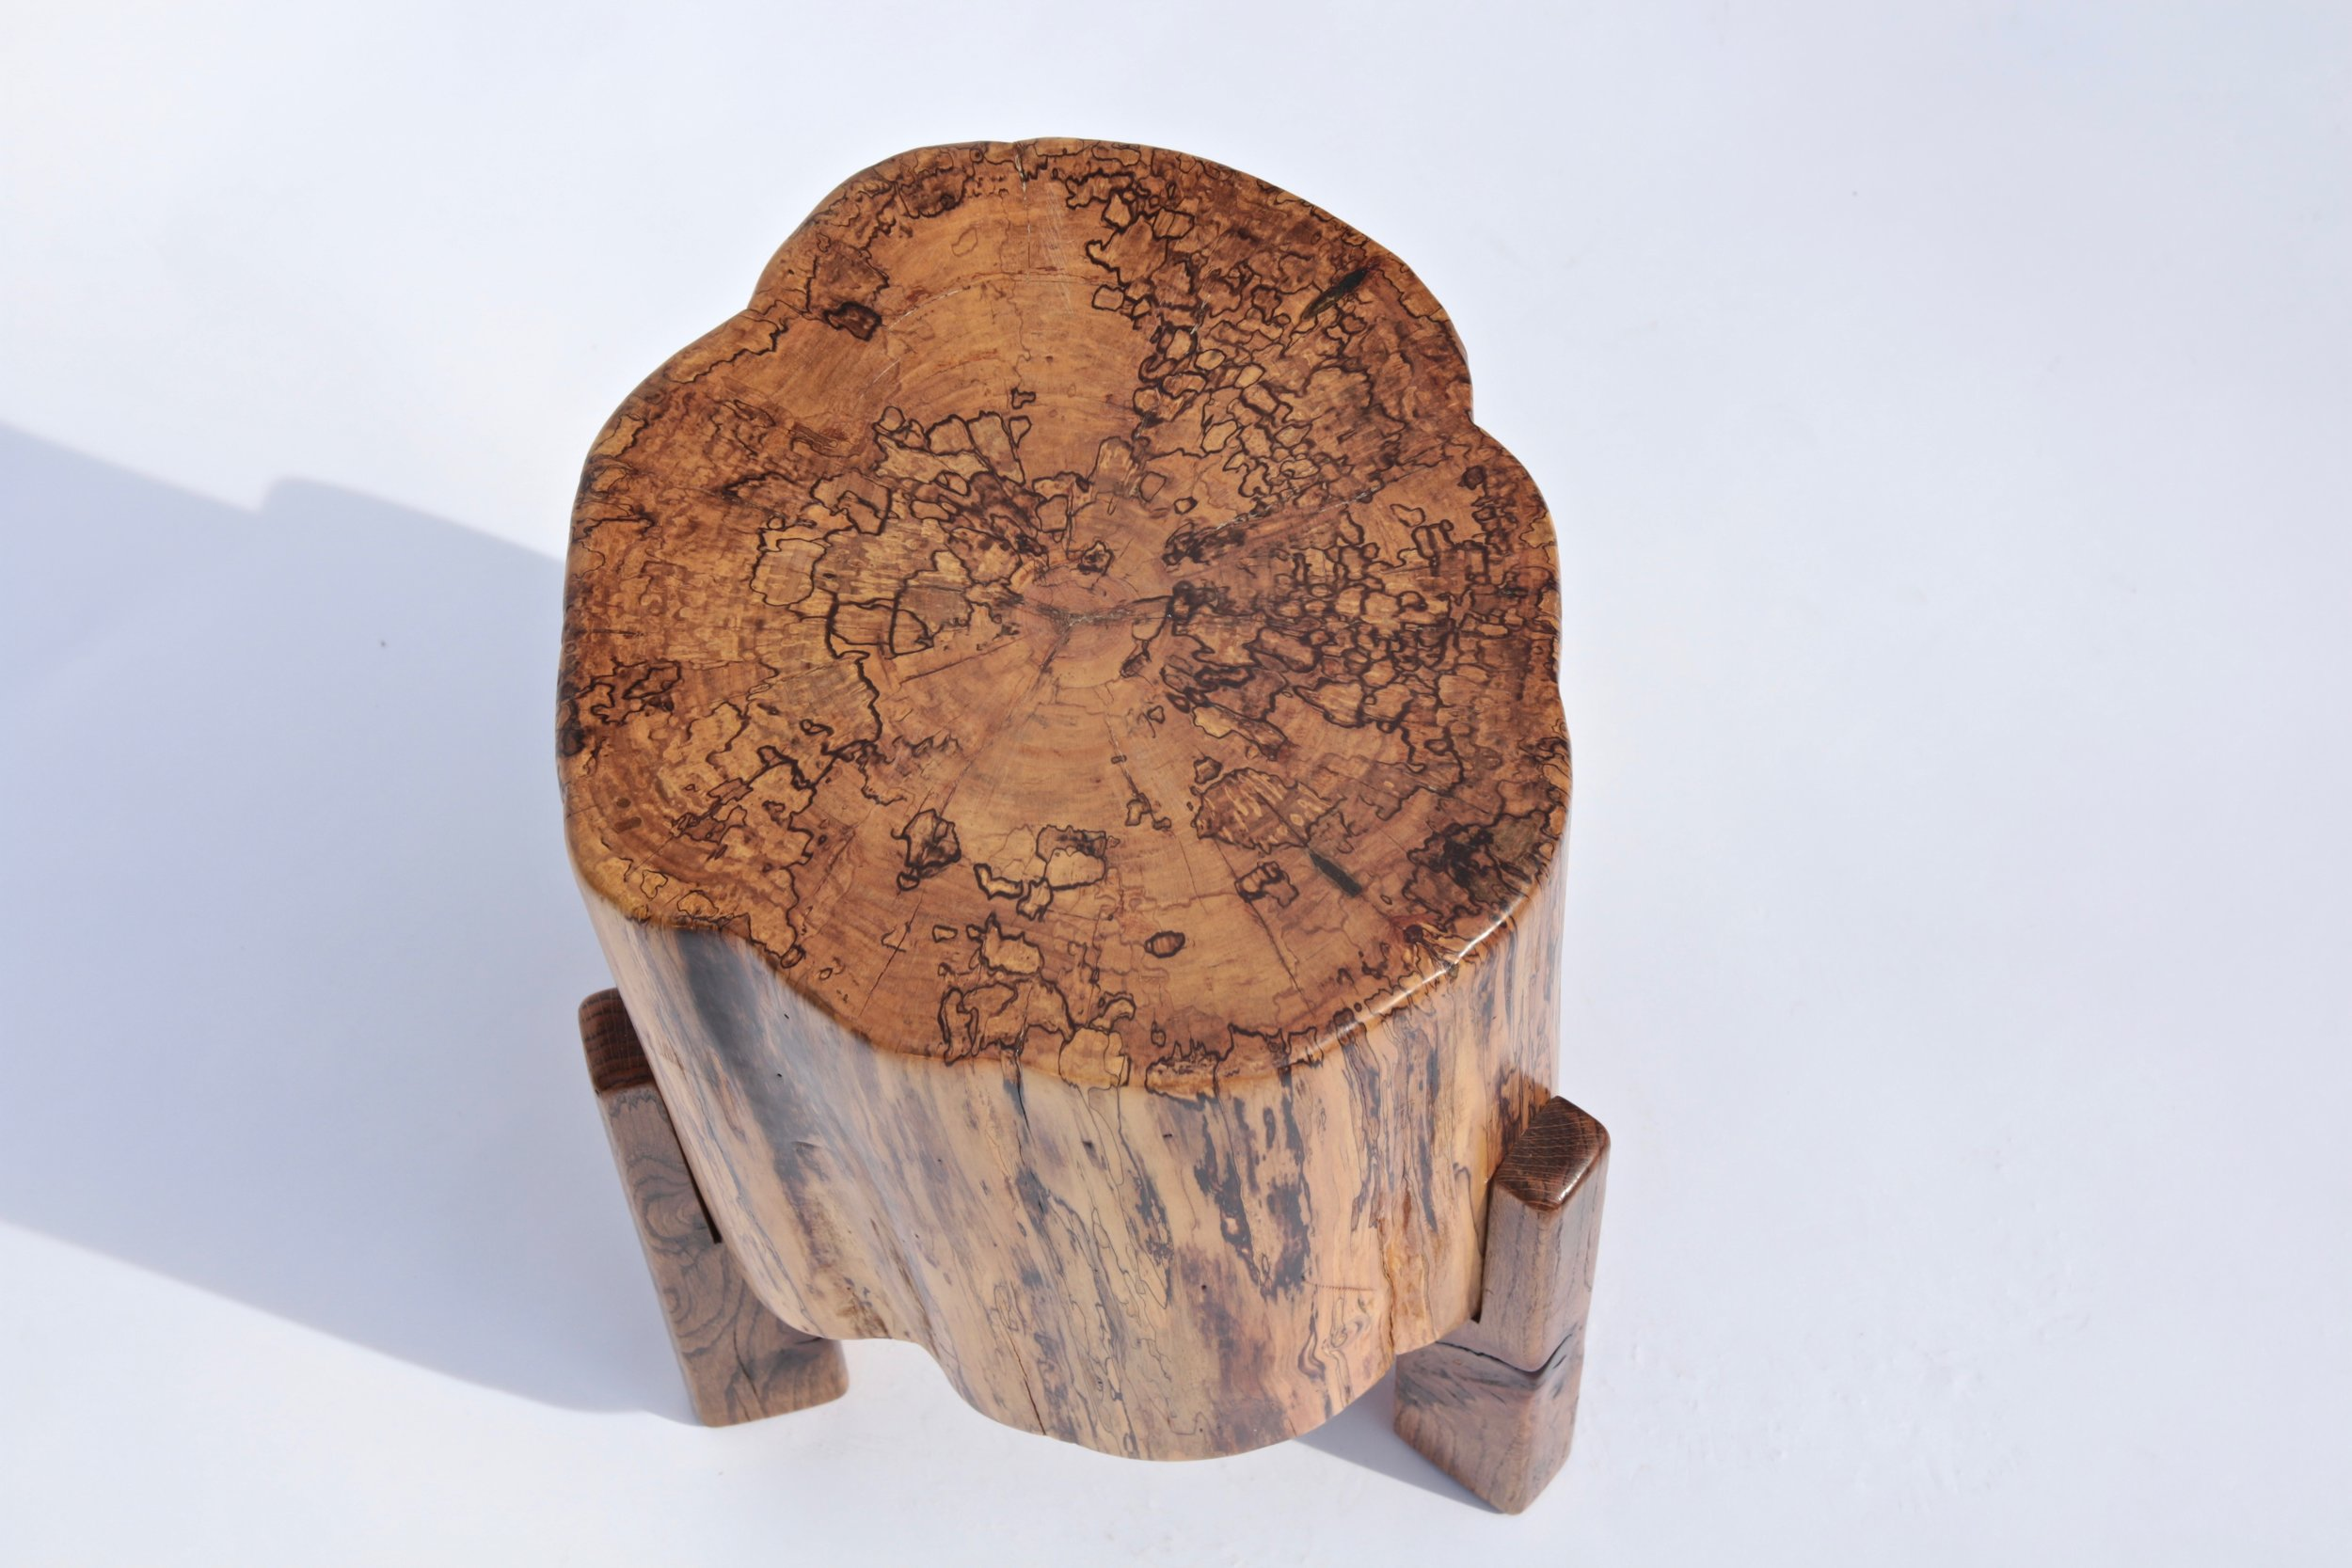 Small Stump Table (top view)